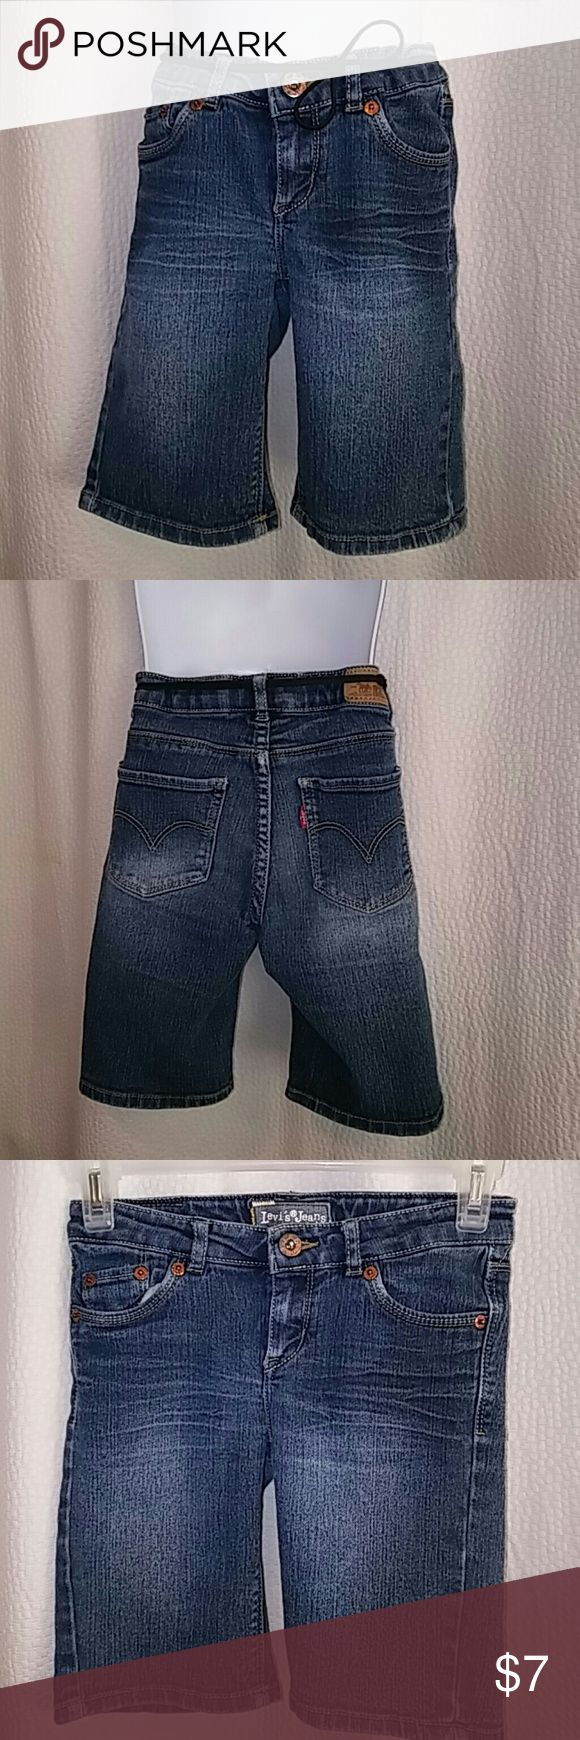 """LEVI STRAUSS BERMUDA SHORTS GIRLS SIZE 7 Very gently used girl's size 7 LEVI'S BERMUDA STYLE SHORTS. Soft cotton blend denim, these have the """"grow with you"""" buttons and elastic on each side of the waist hidden inside for extended seasons of use! Very cute and grown up! Levi's Bottoms Shorts"""